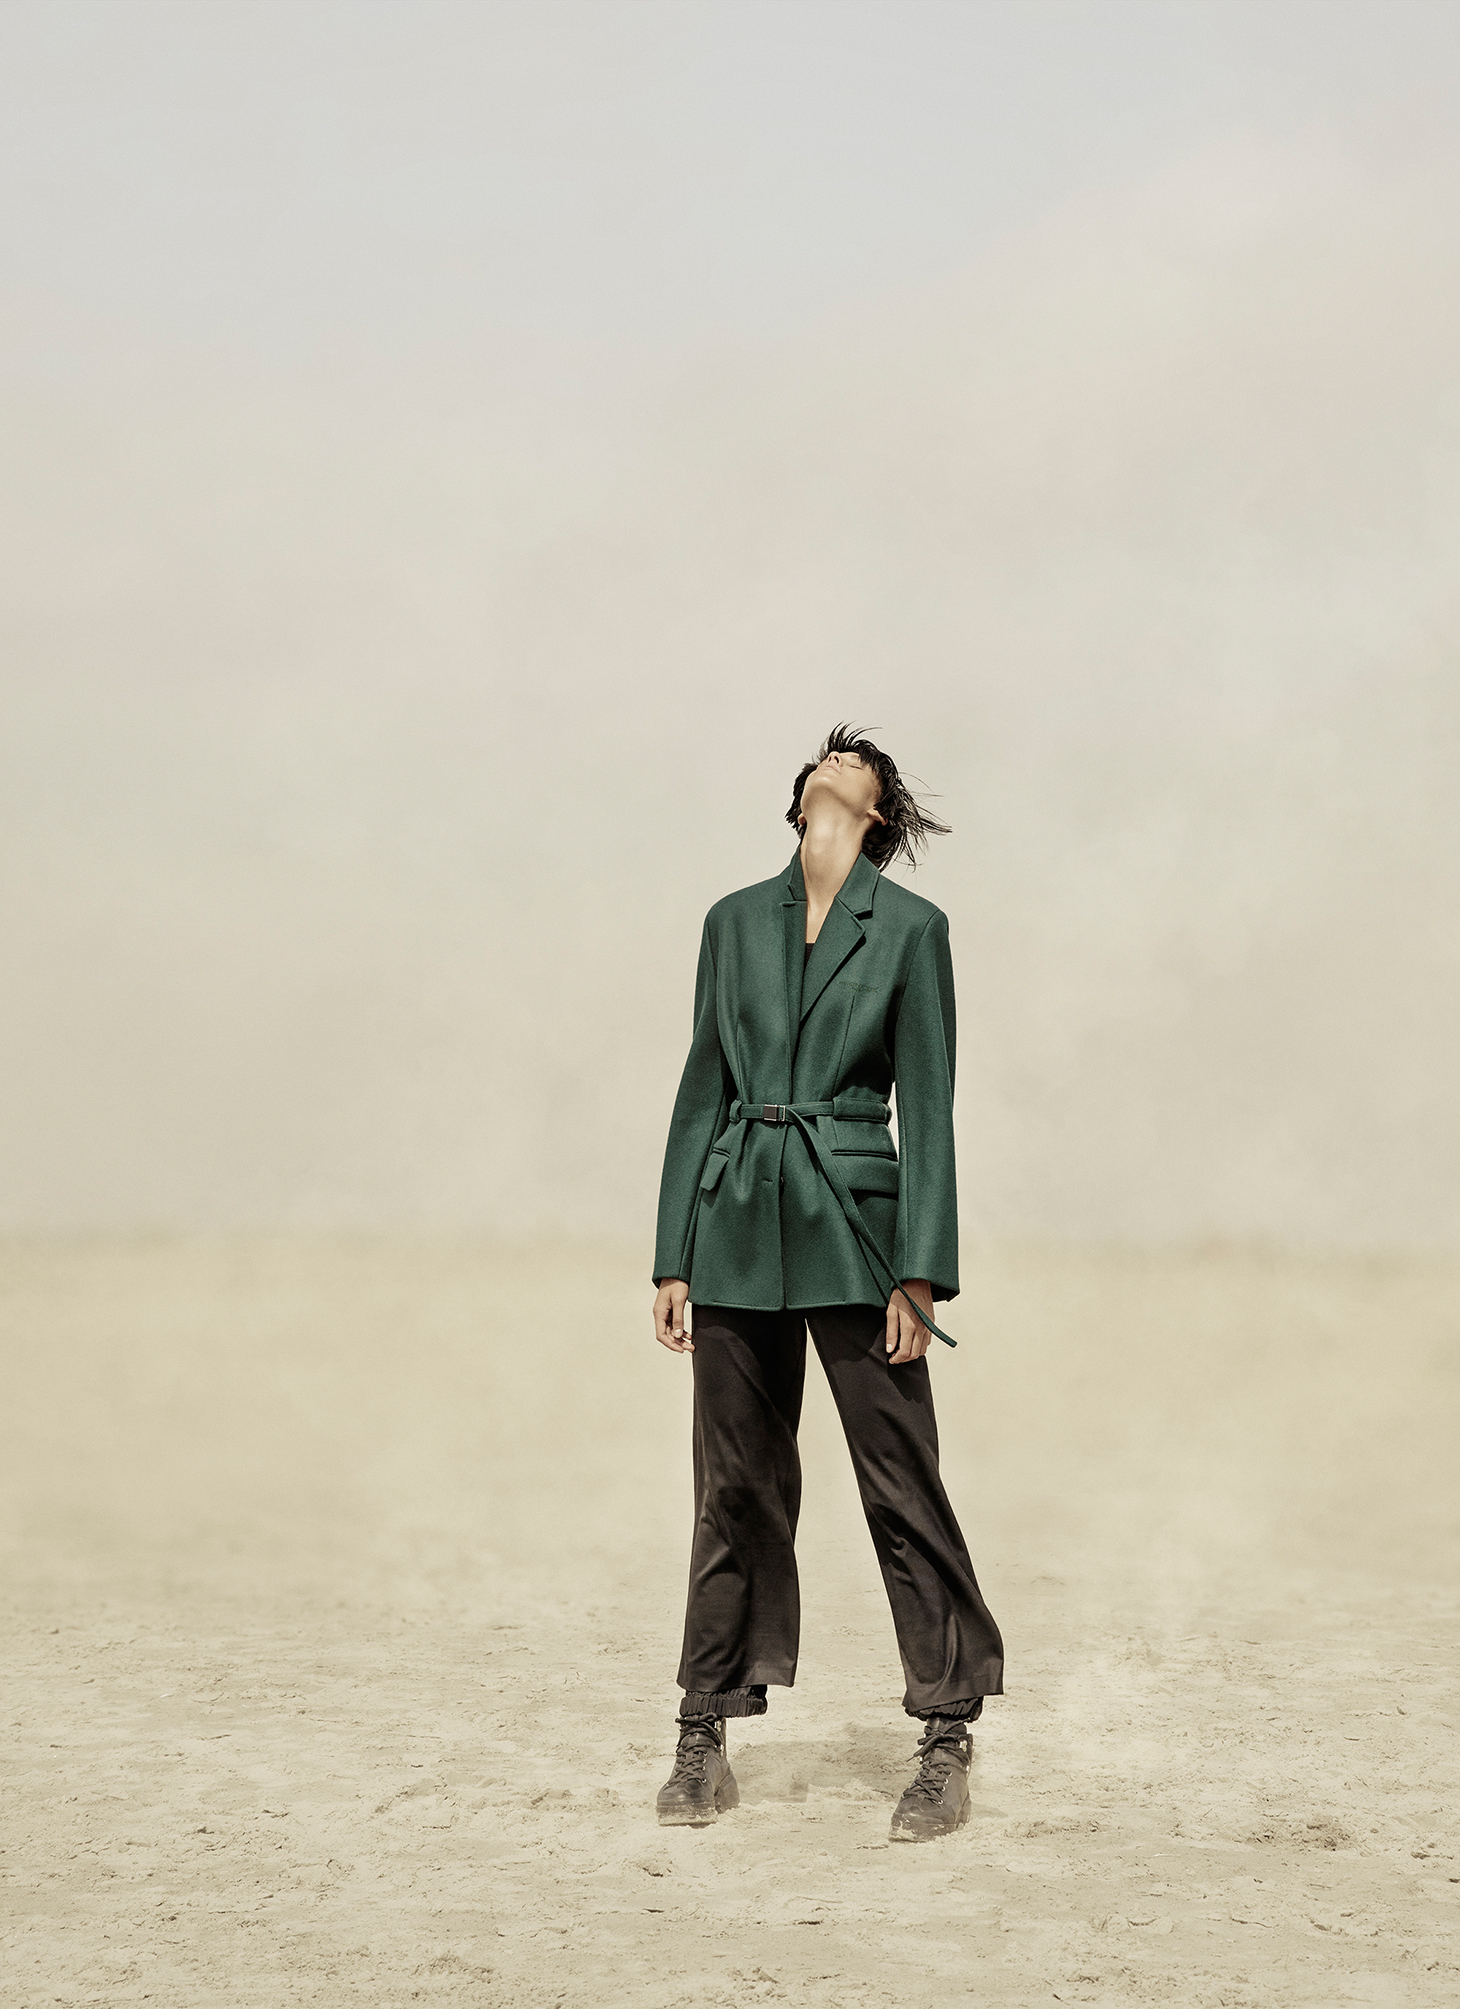 Green Coat Woman Short Hair